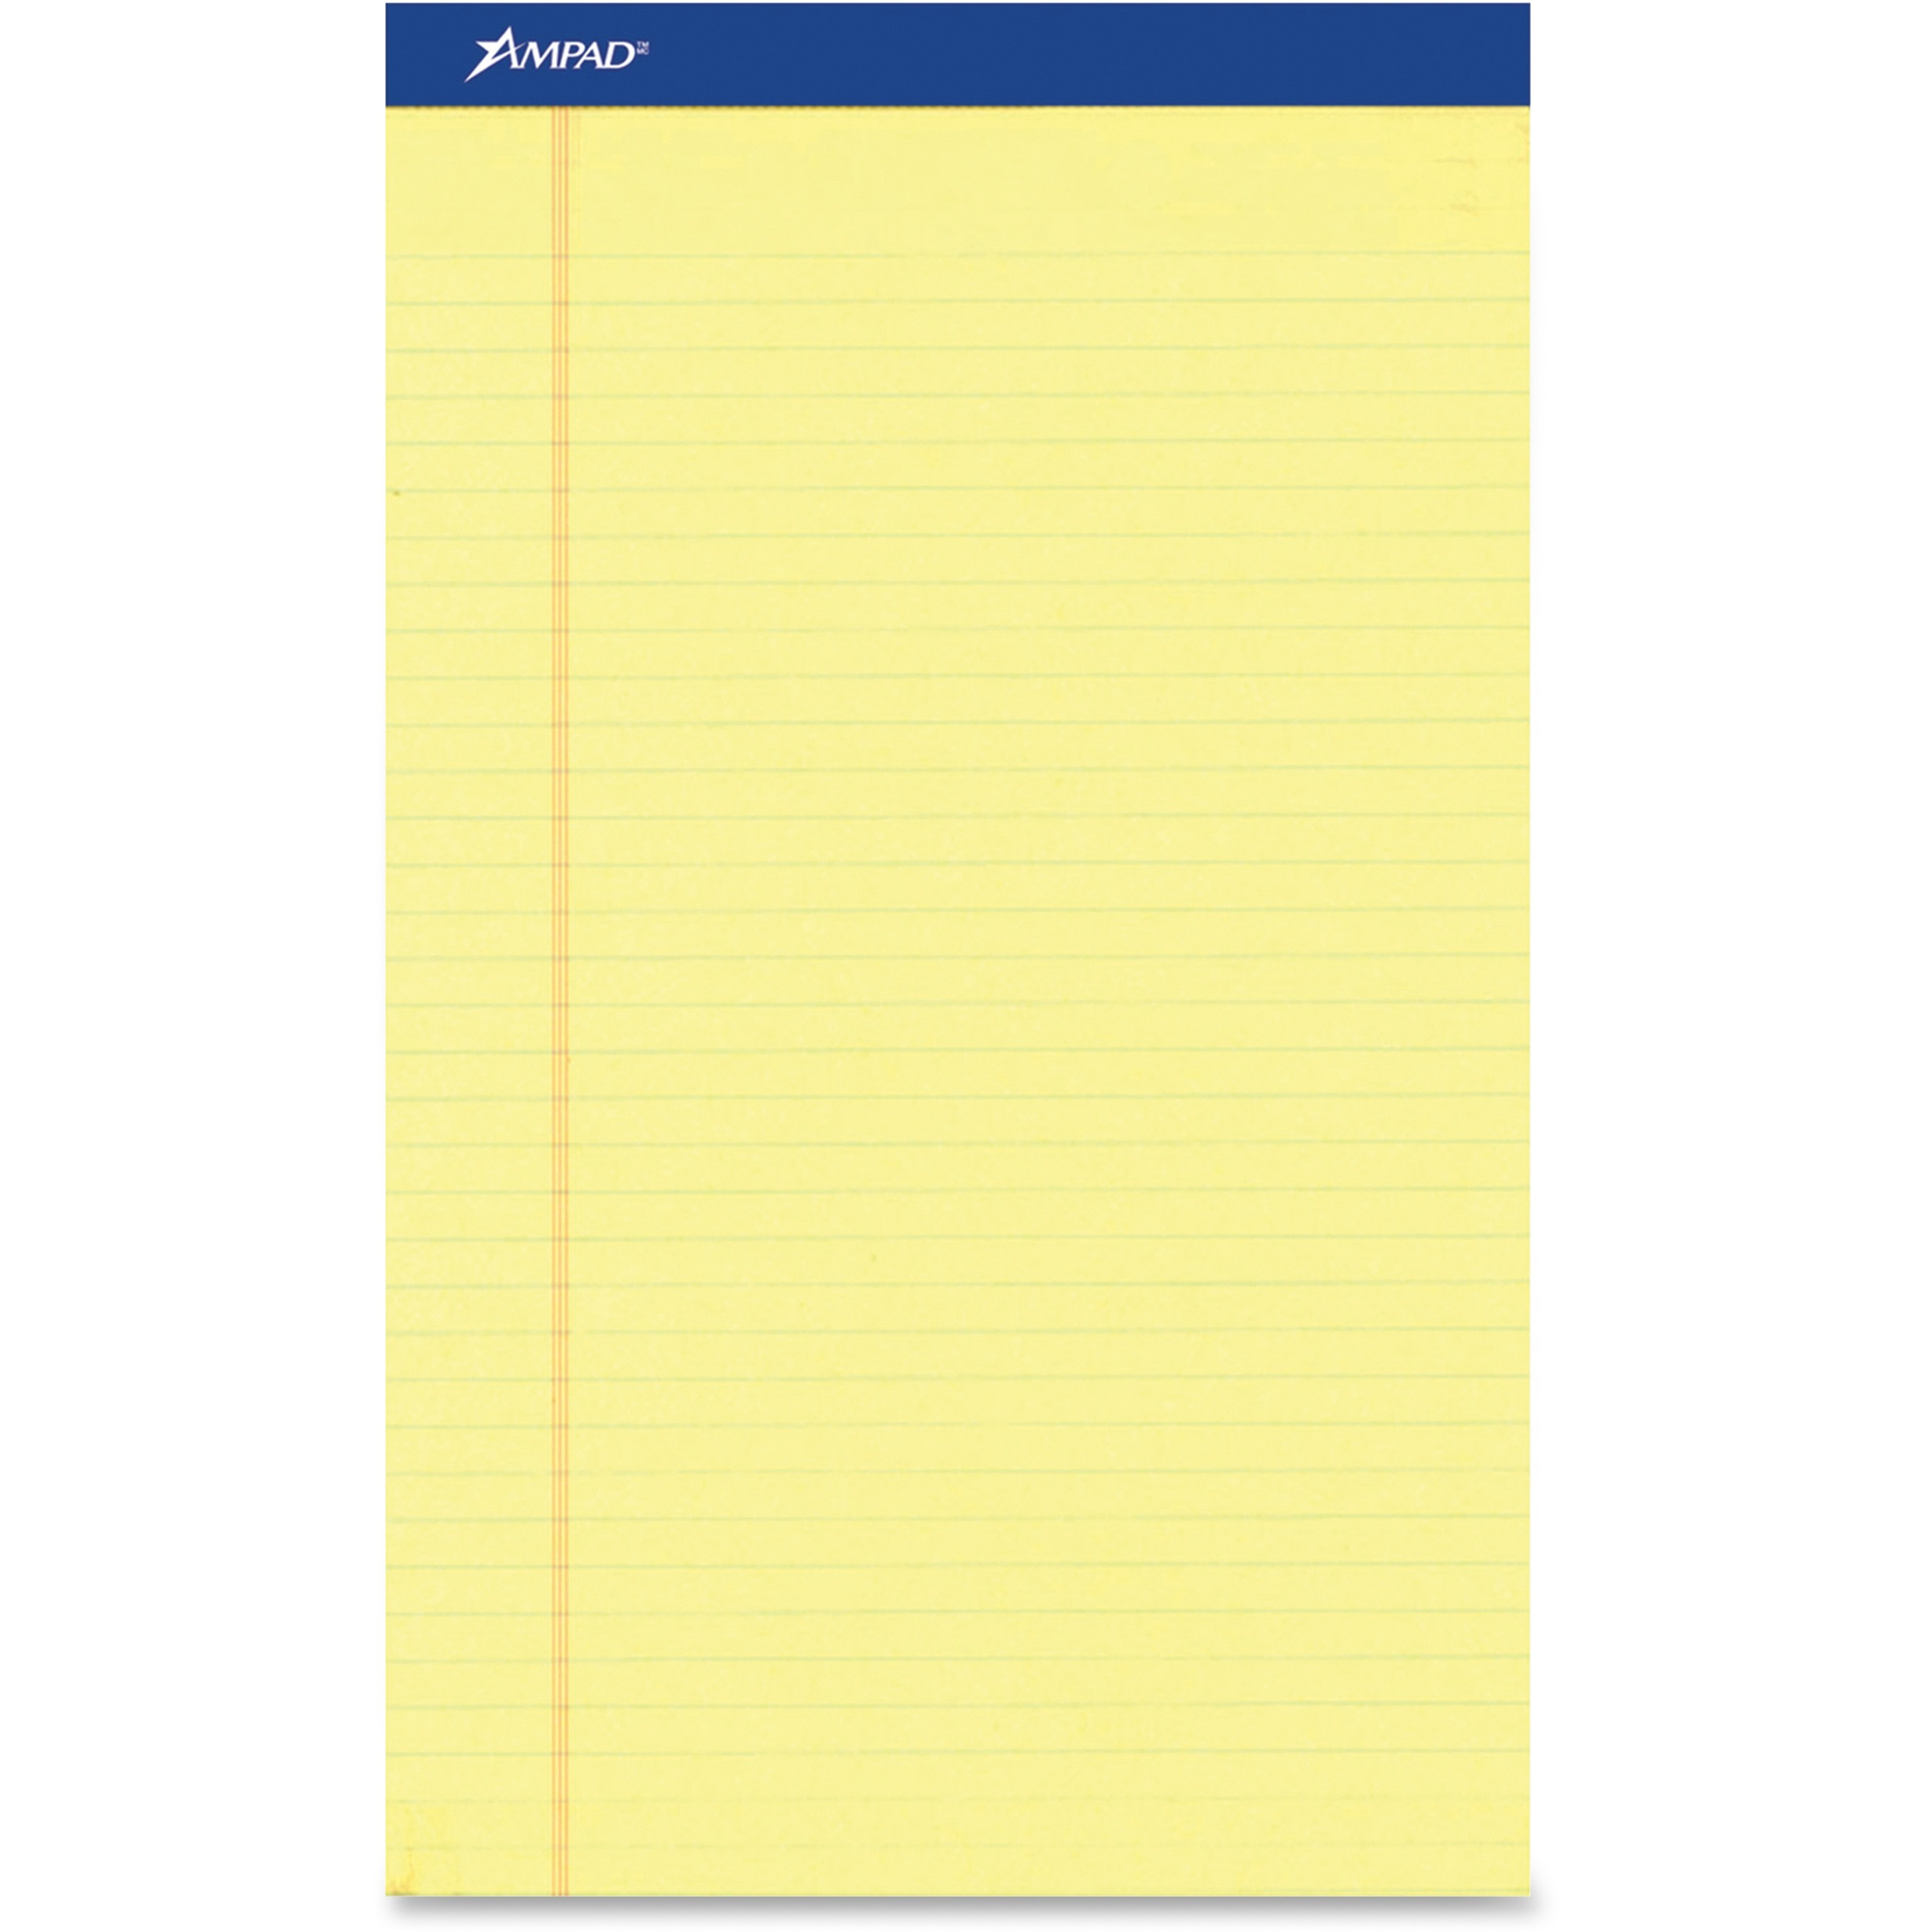 Perforated Writing Pad, 8 1/2 x 11 3/4, Canary, 50 Sheets, Dozen